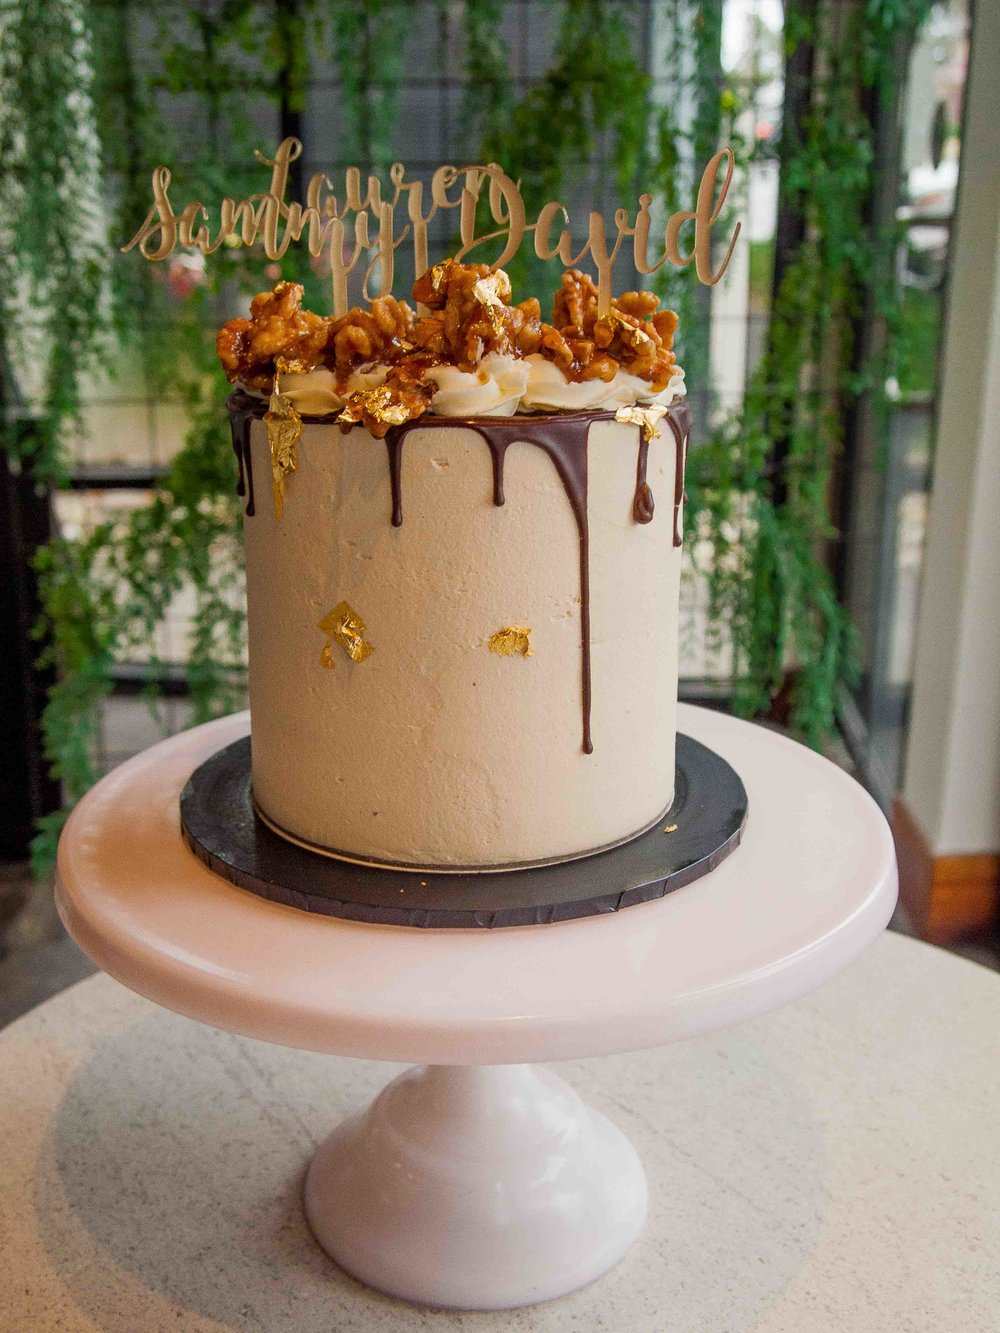 Walnut, Maple Syrup and Coffee - Dark chocolate and coffee cake filled with layers of maple syrup and cinnamon frosting and salted walnuts. Decorated with maple syrup frosting and salted caramel walnuts.5